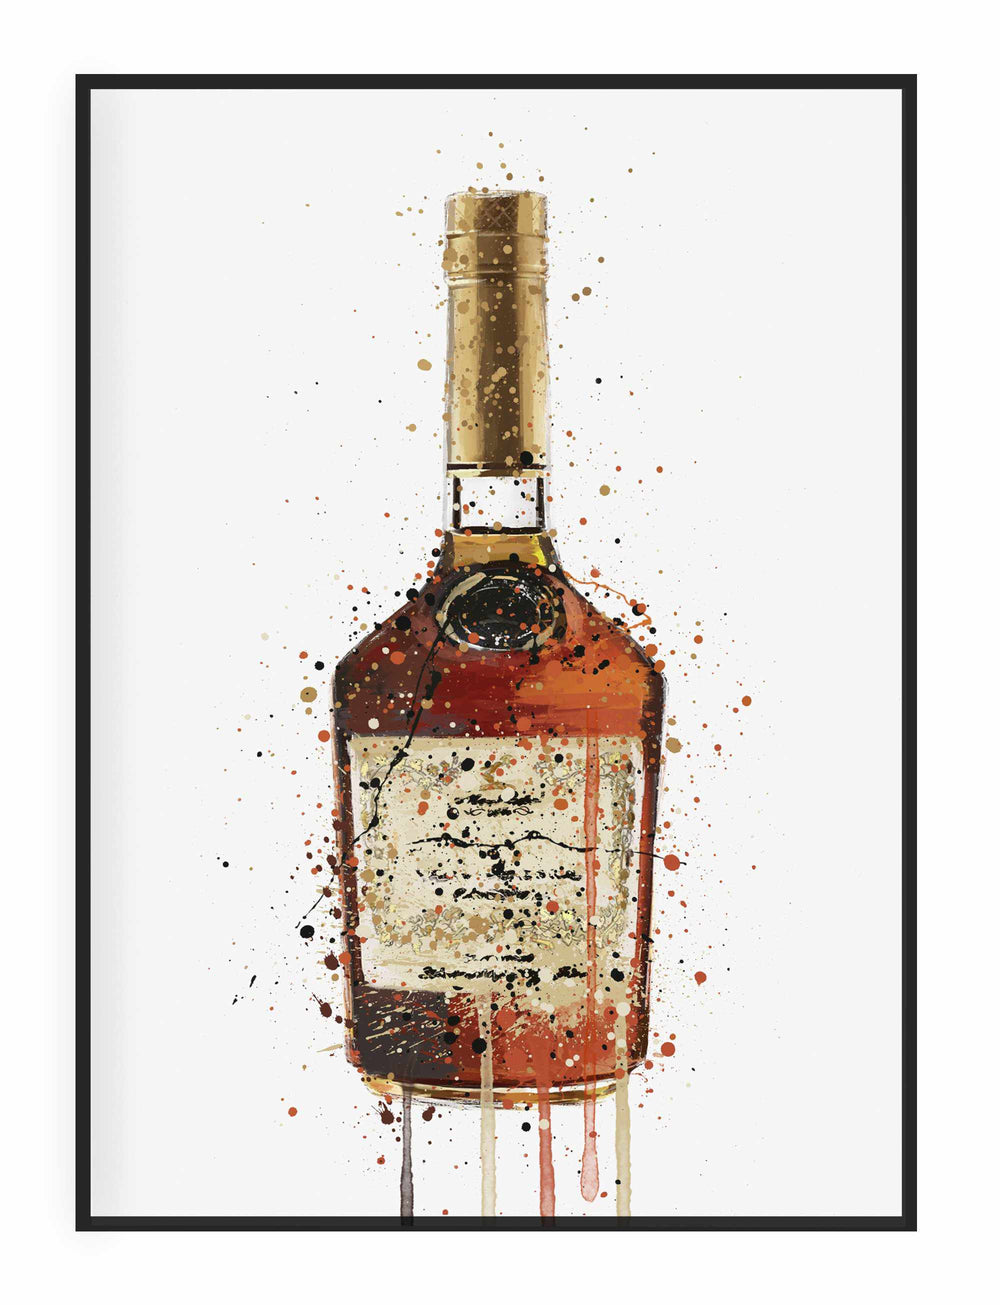 Liquor Bottle Wall Art Print 'Burnt Toffee'